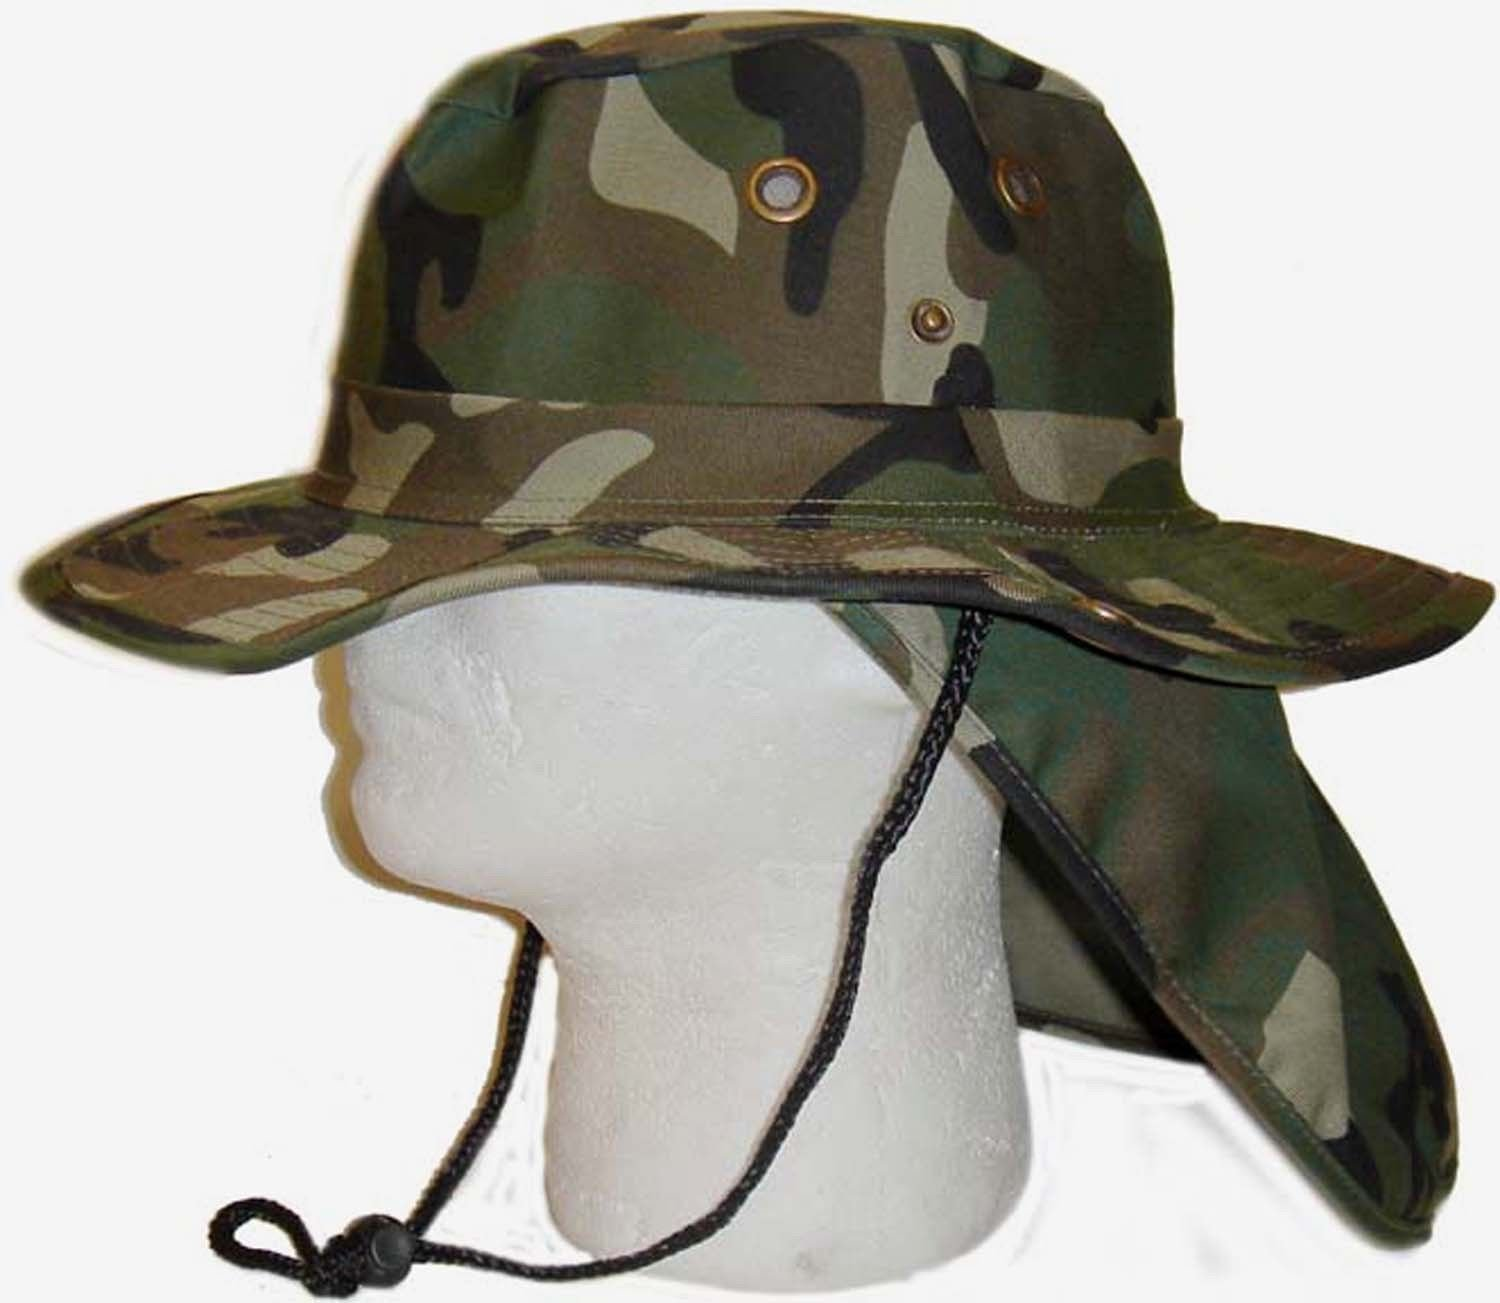 1ba579f43a8 Amazon.com   Boonie Fishing Hiking Snap Brim Army Military Neck Cover Flap  Green Camo Bucket Sun Hat Cap   Sports   Outdoors